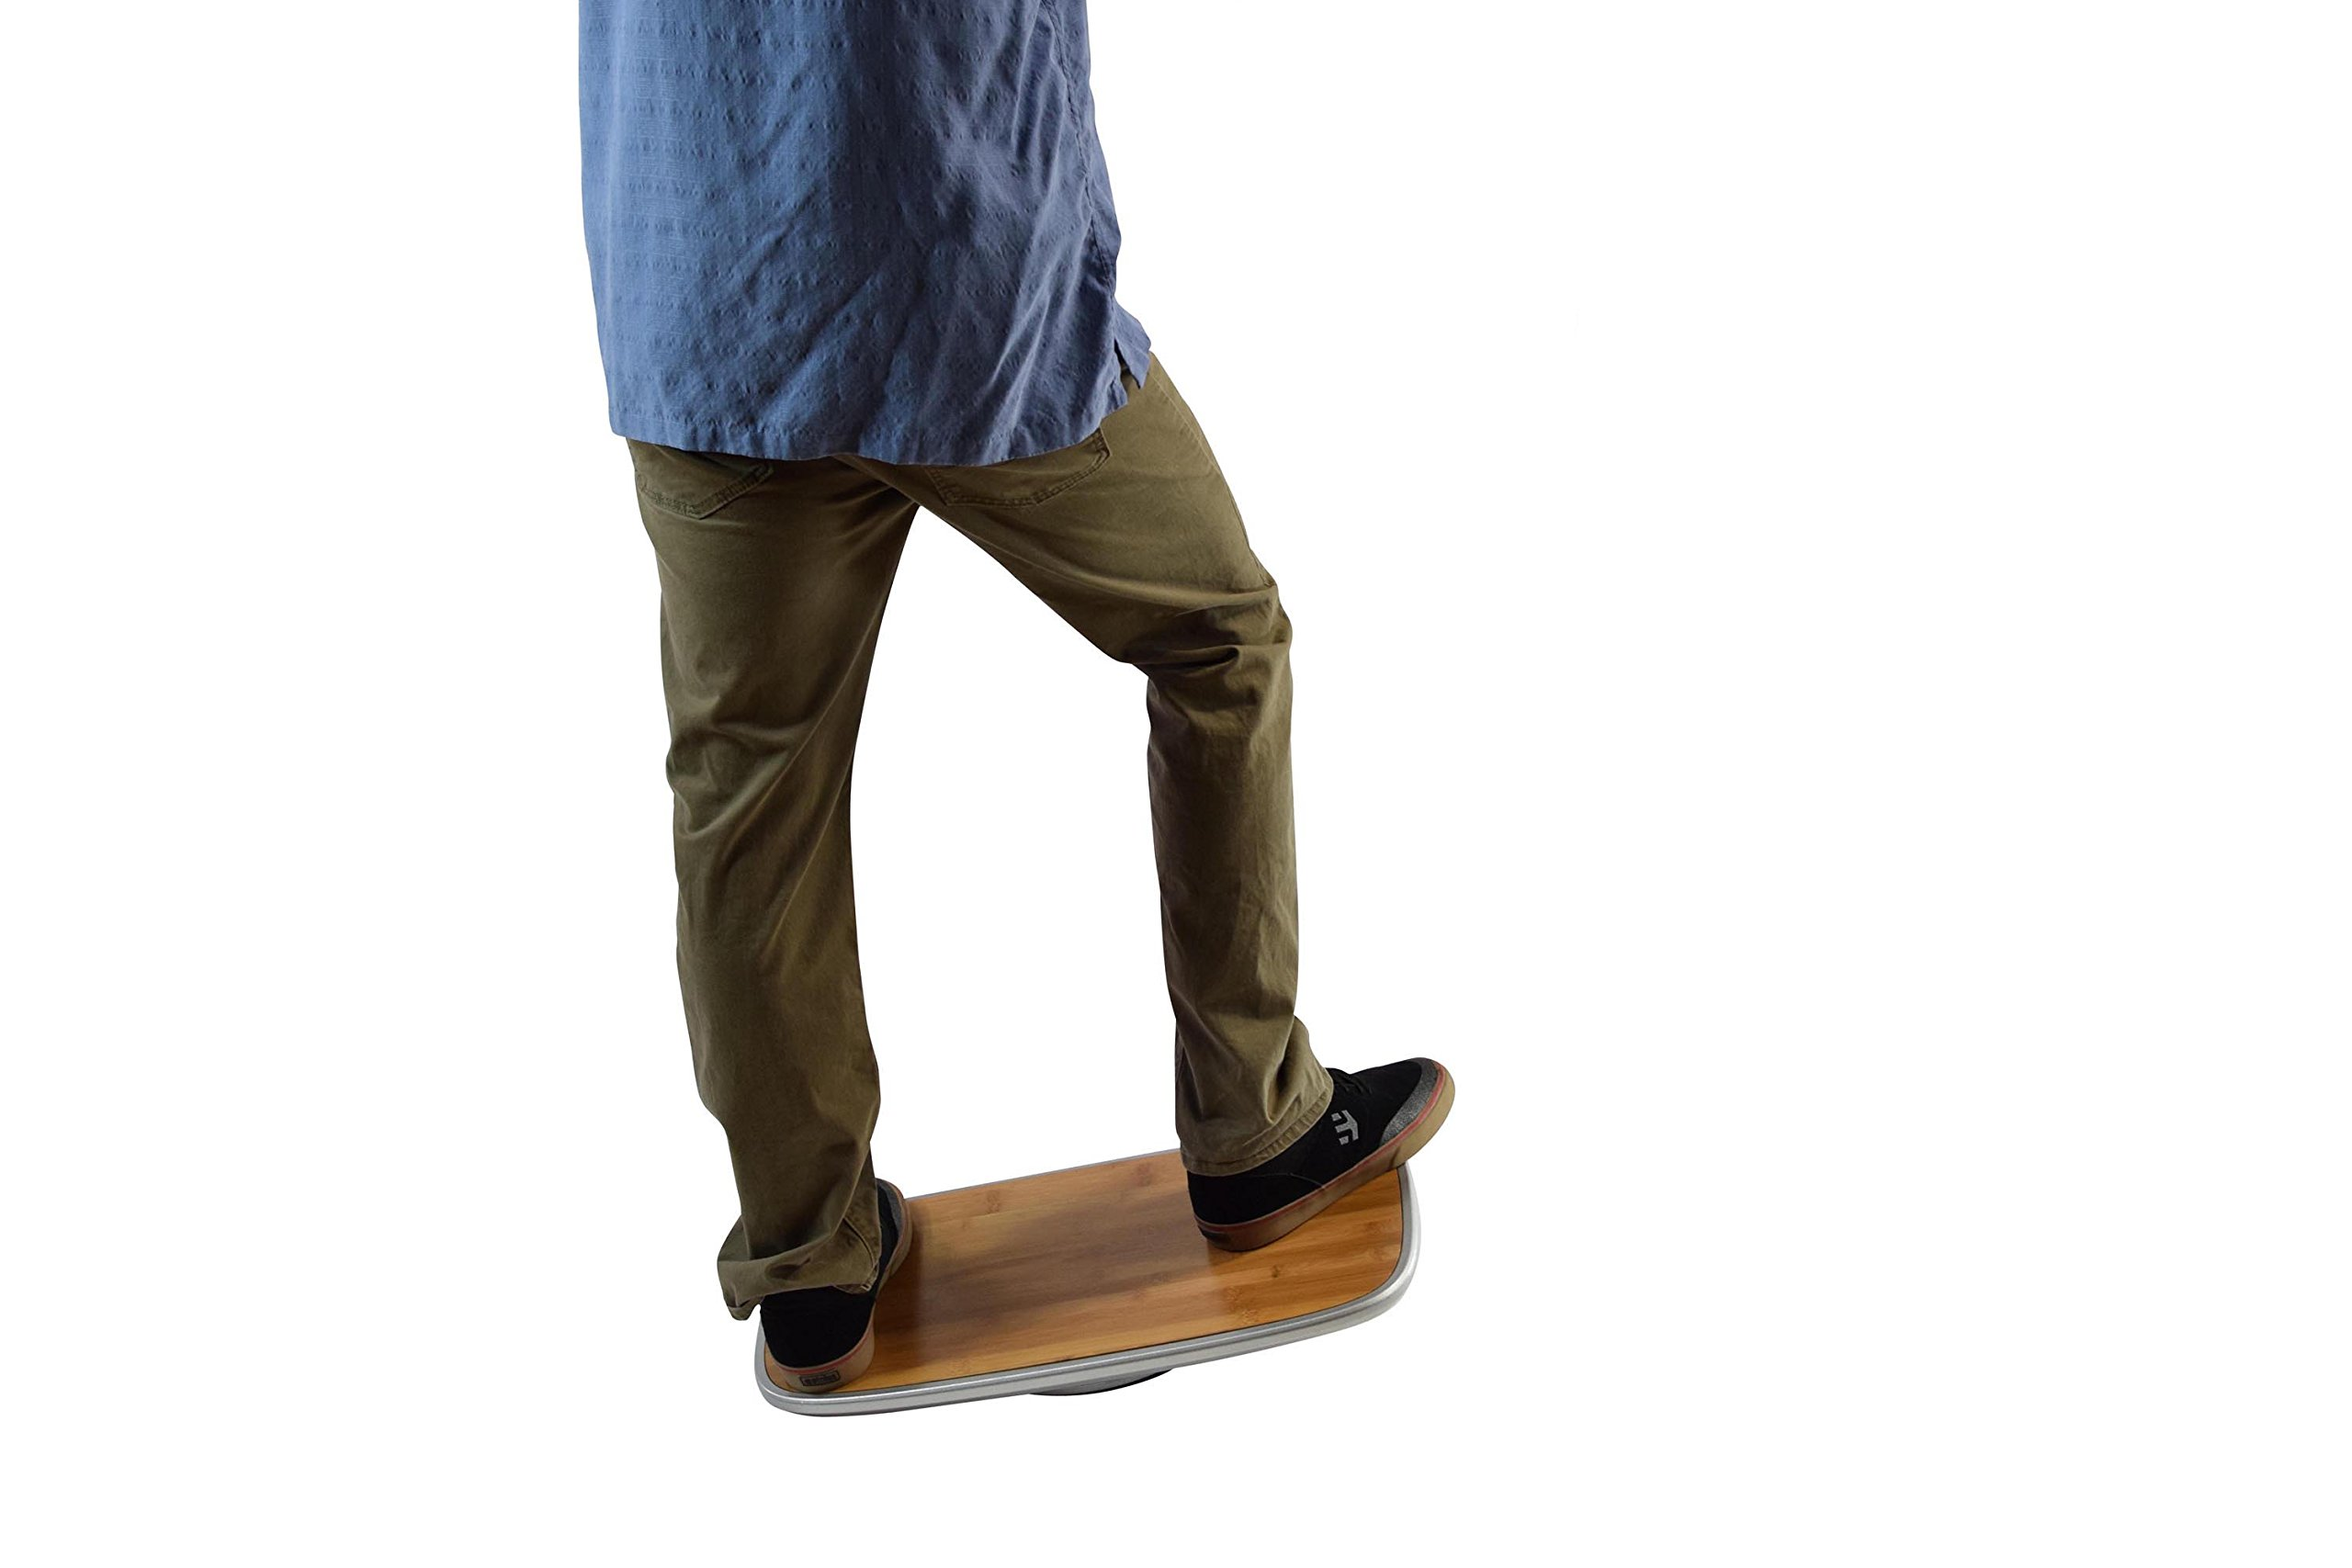 BASE Balance & Stability Board. Active Standing Desk Wobble Platform Trainer for Home, Office, Rehab, Fitness. Full Range of Motion. Patented by Uncaged Ergonomics (Image #10)